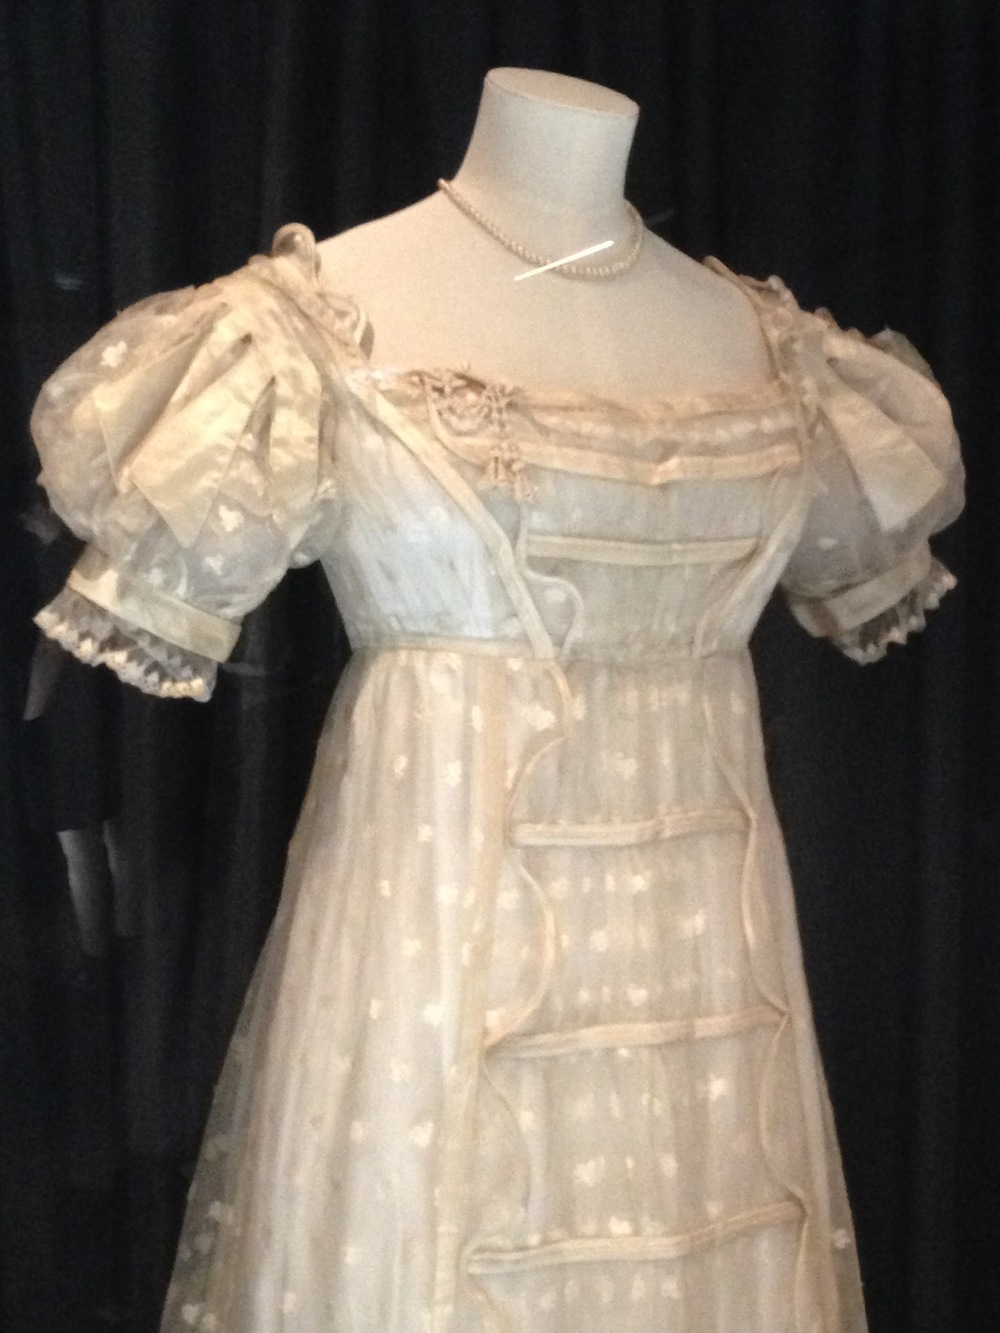 Close-up of the Regency wedding dress.